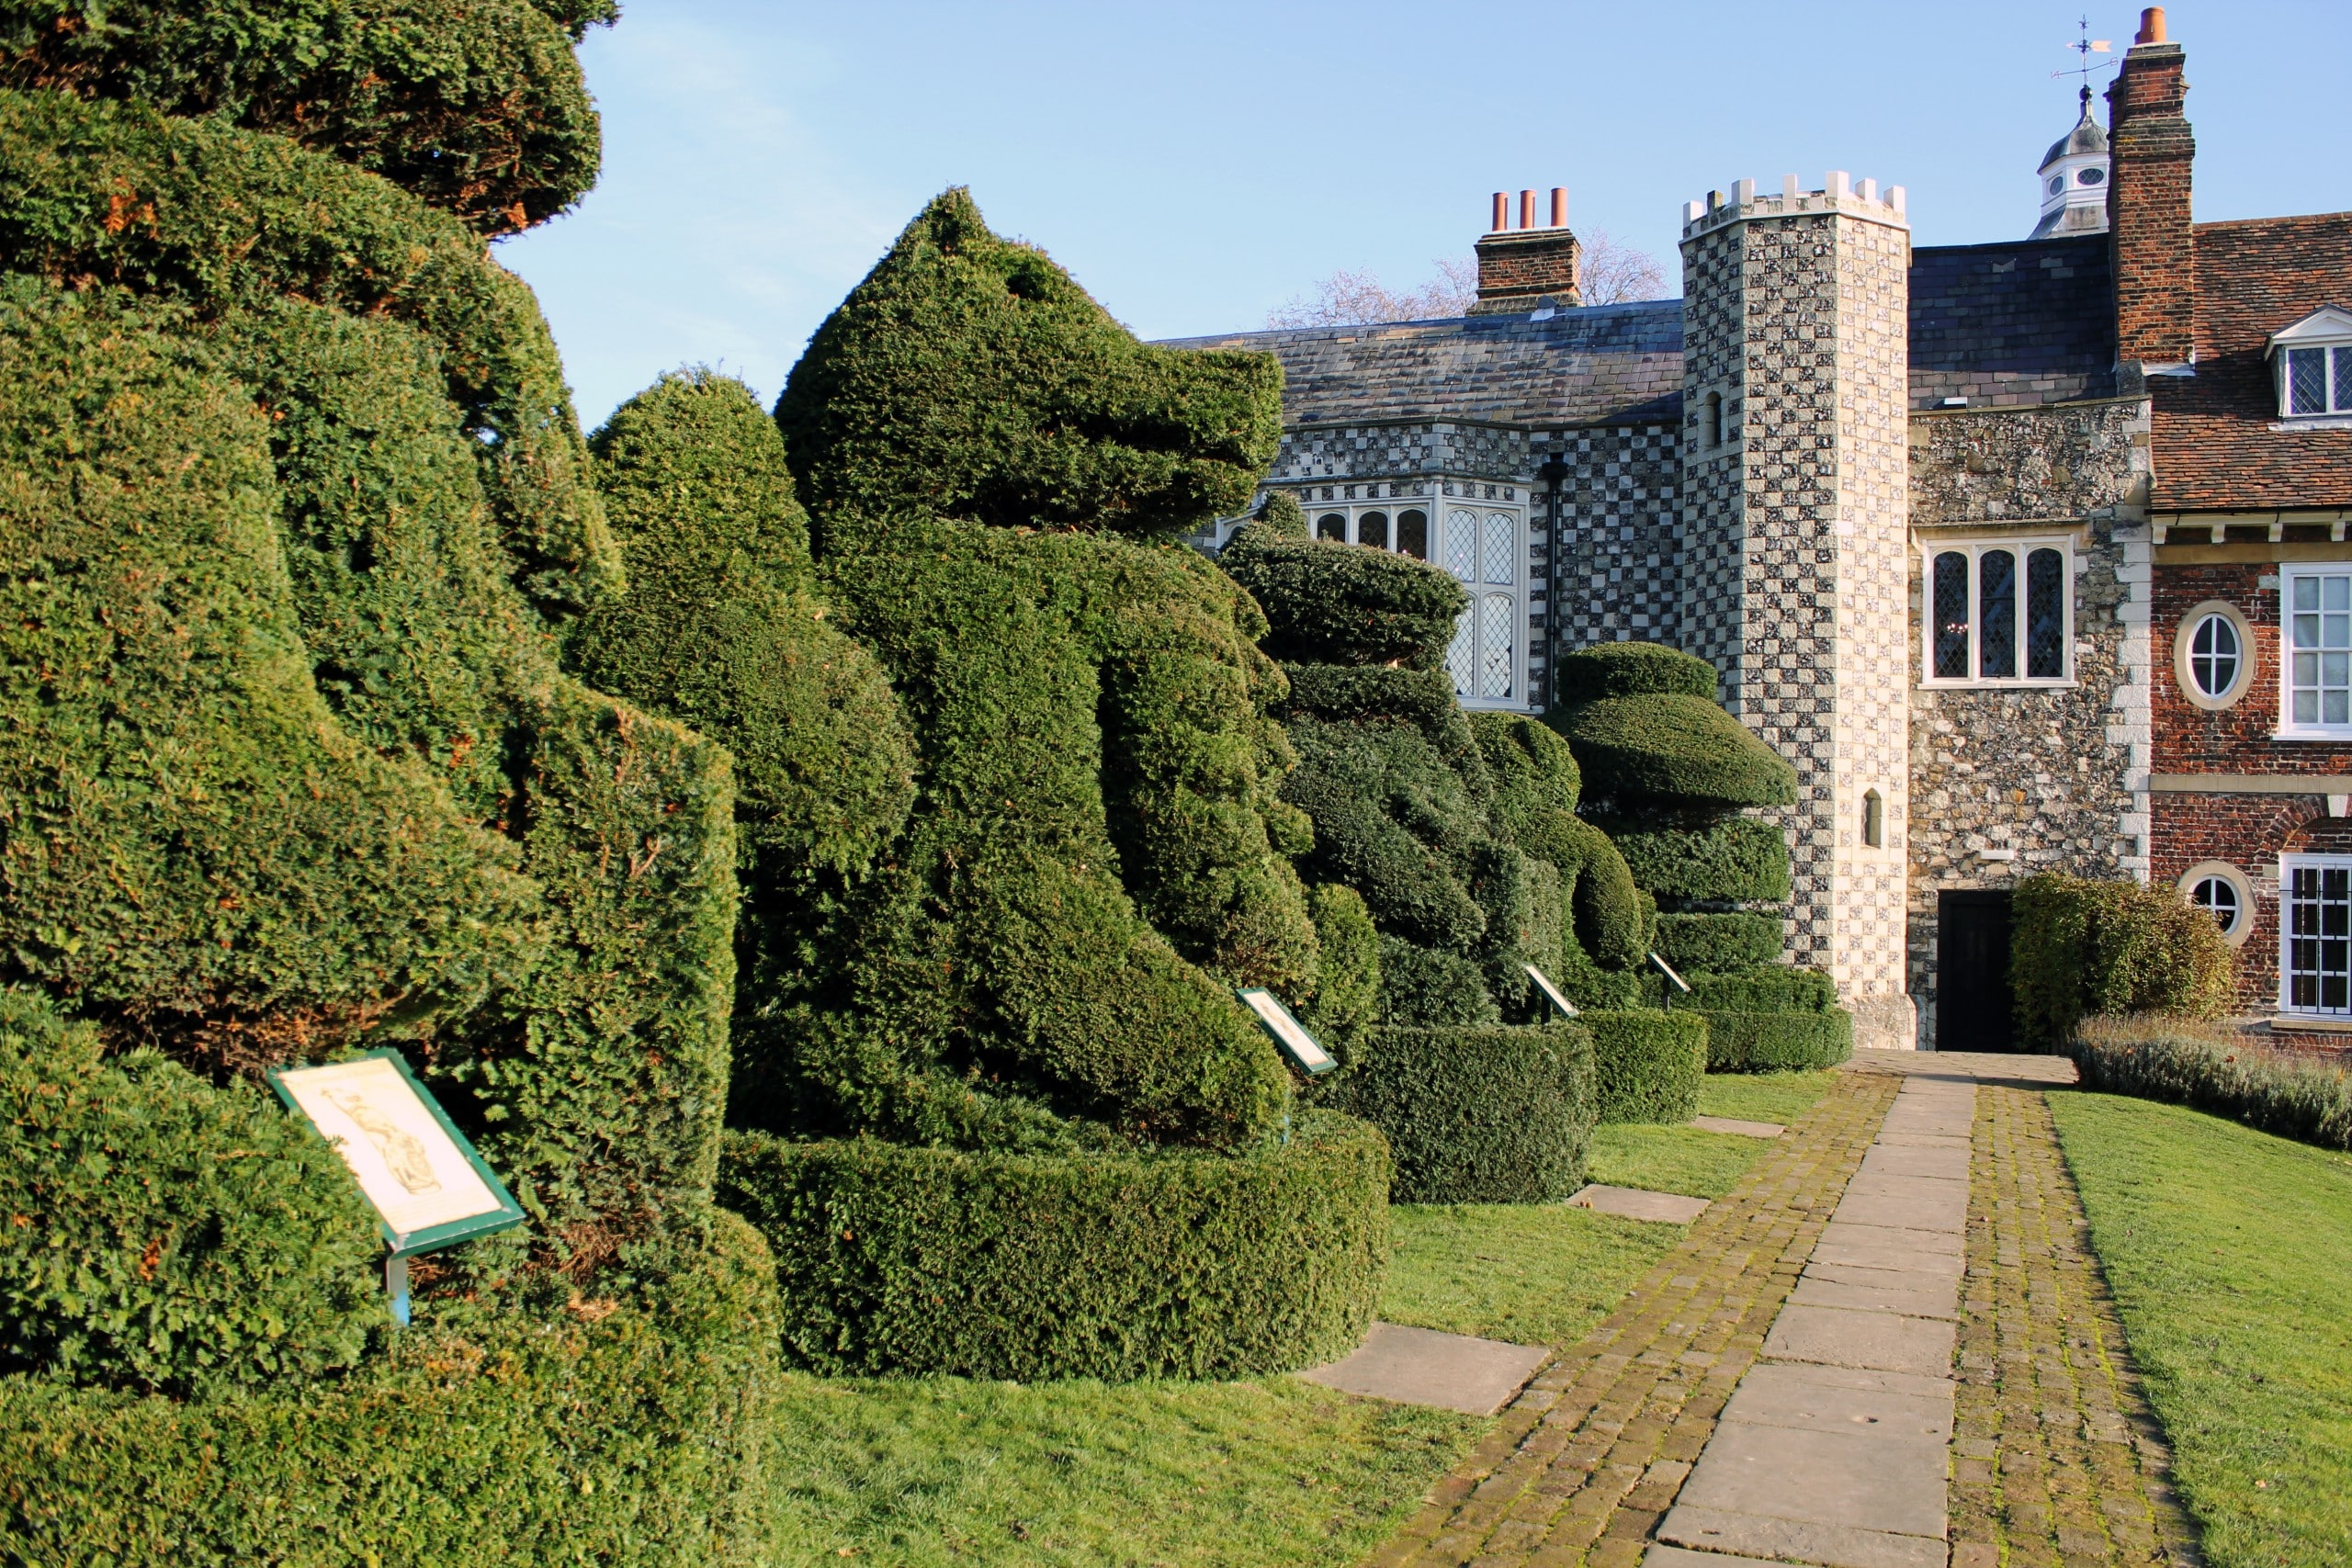 Hedges in gardens at Hall Place in Bexleyheath, Kent